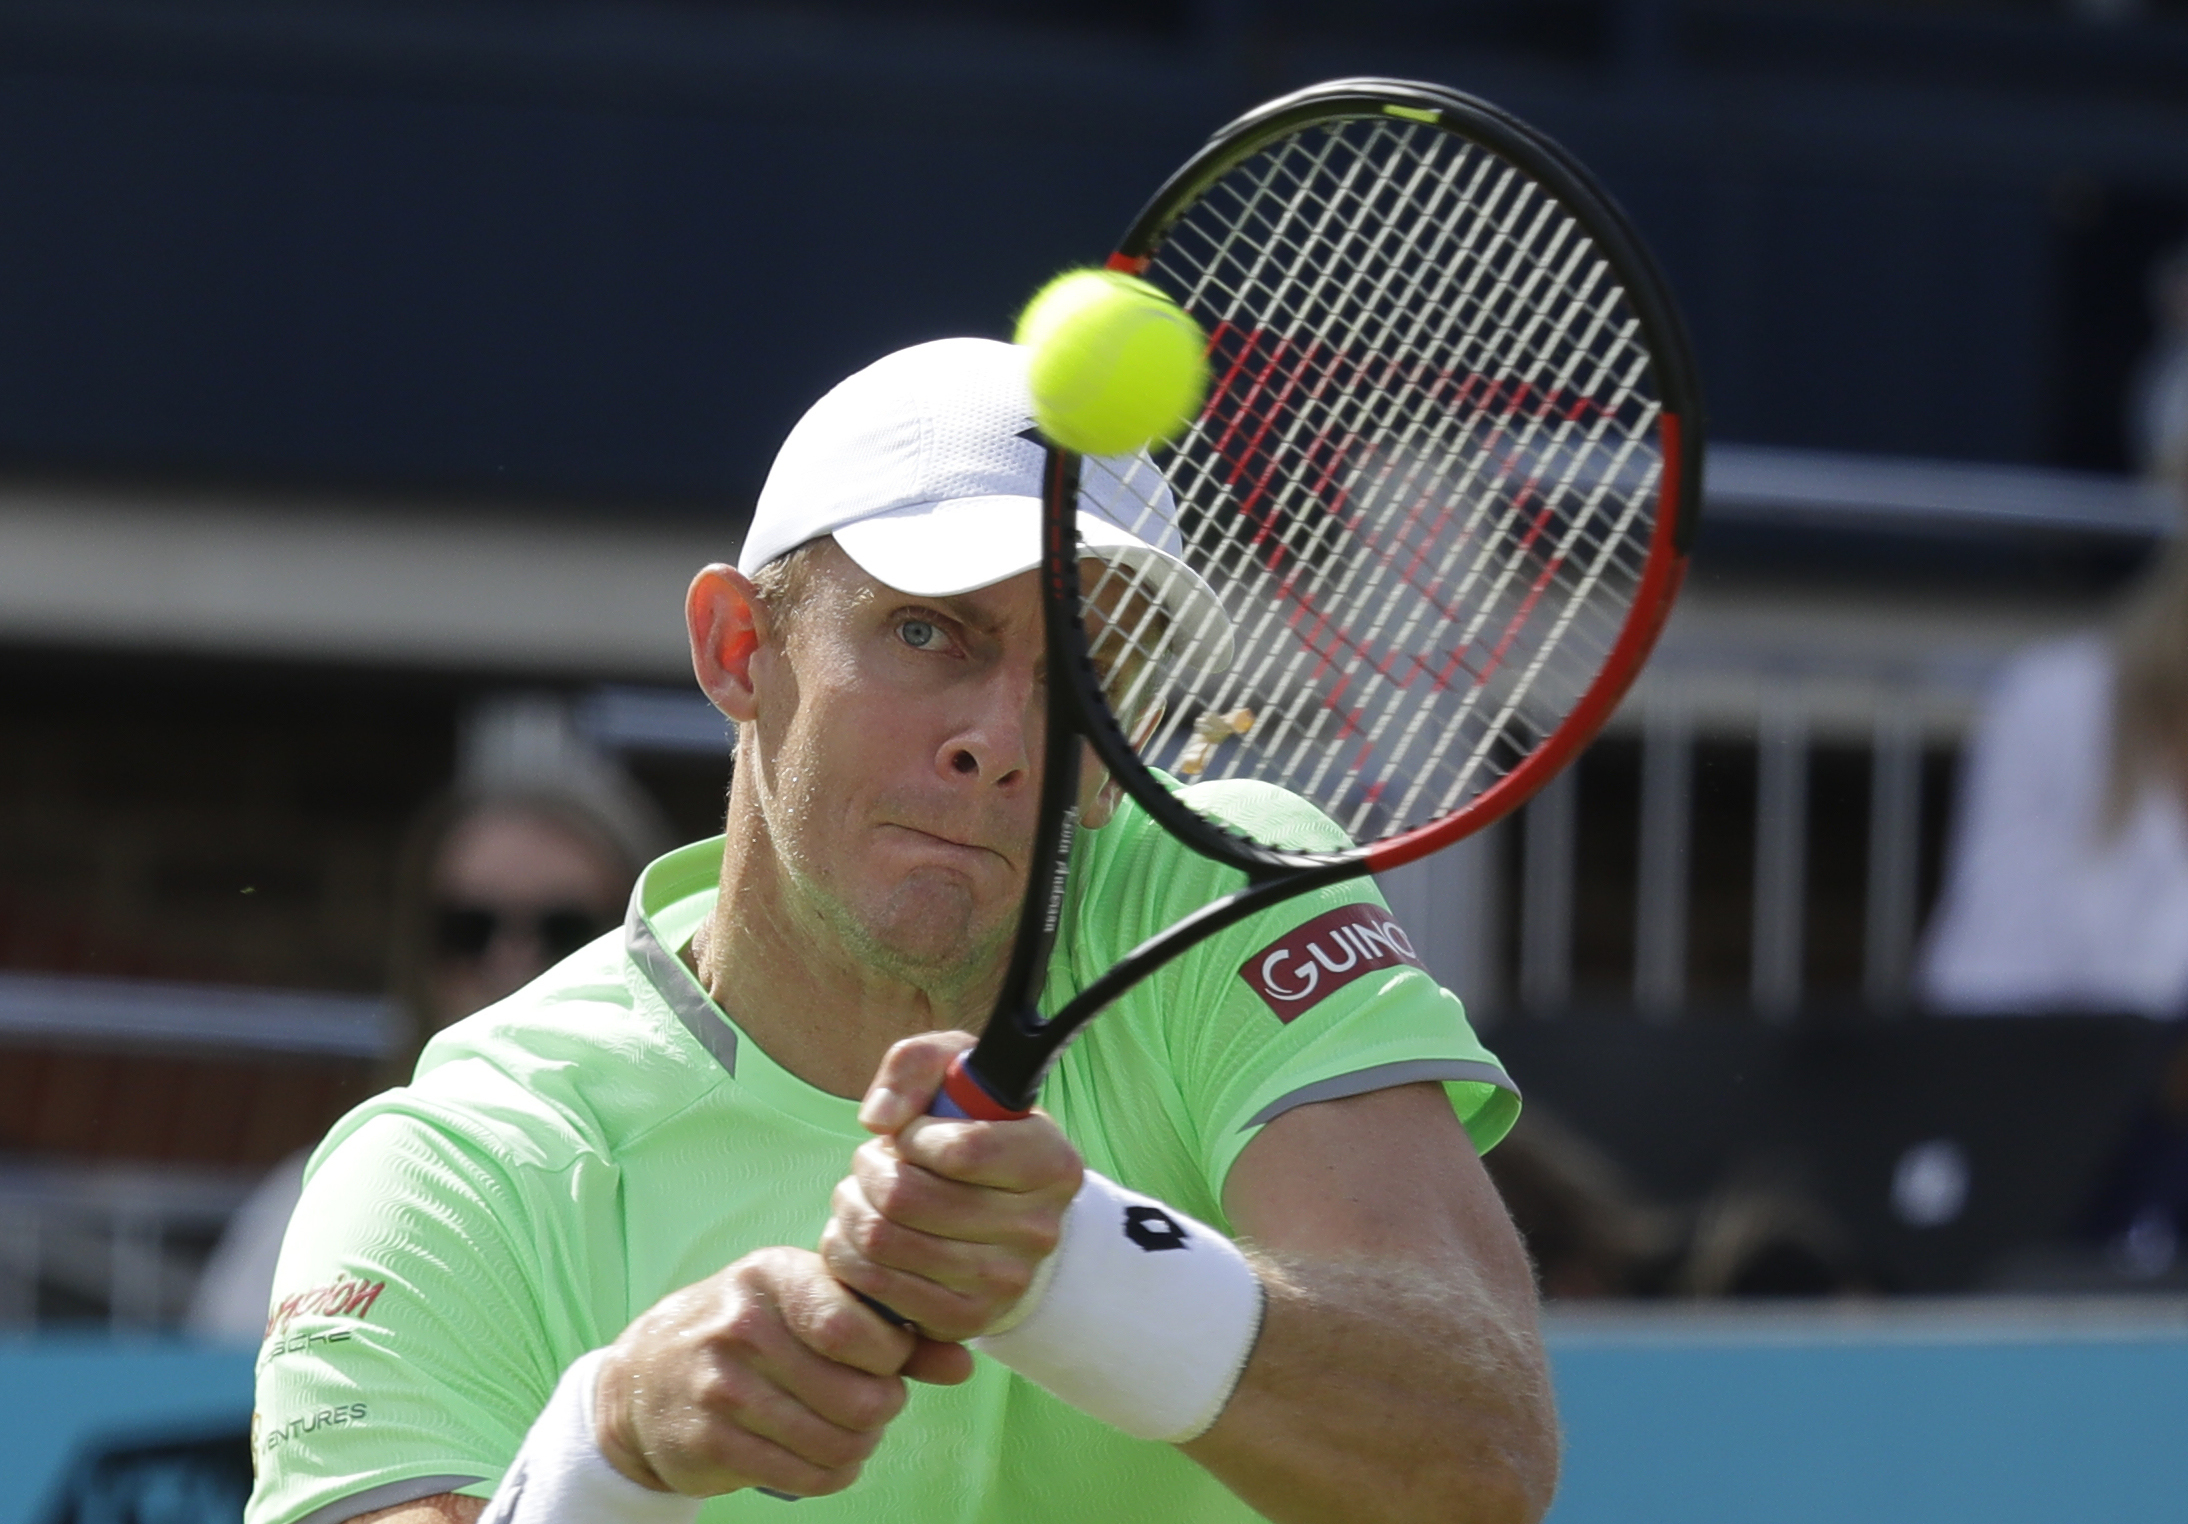 Kevin Anderson notes an out gay ATP pro's likely impact